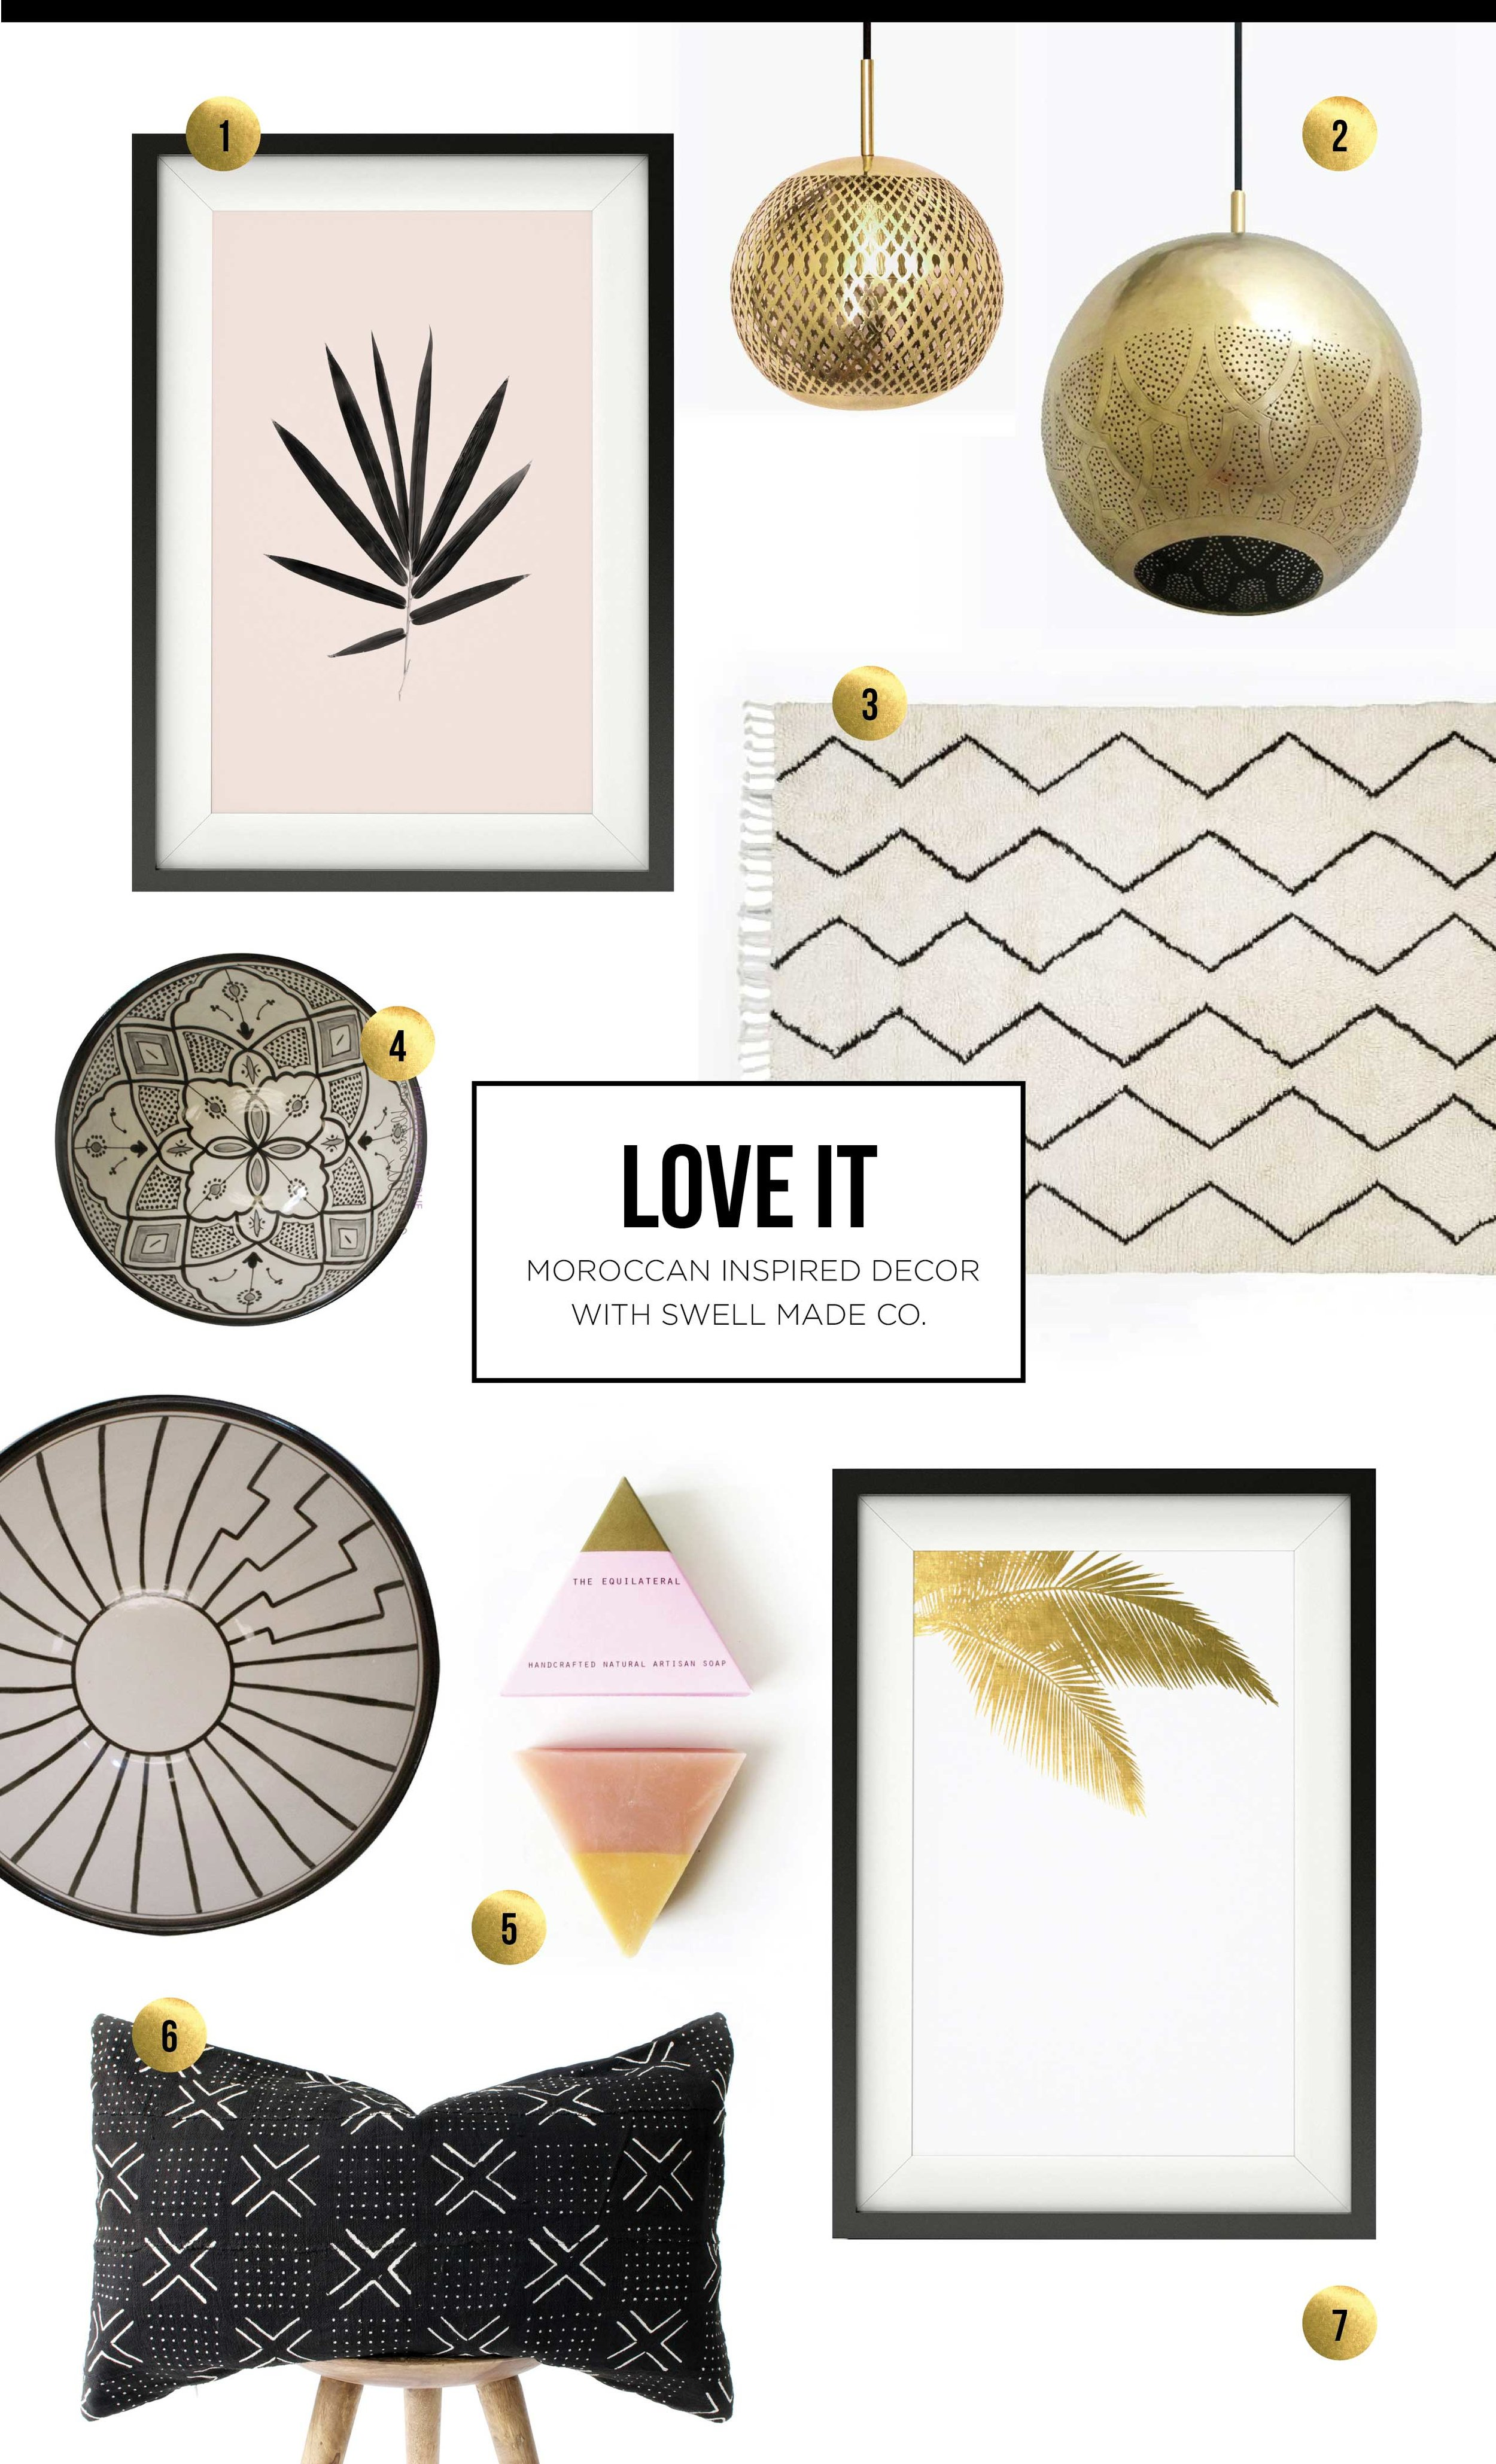 LOVE IT - Moroccan inspired decor with Swell Made Co.